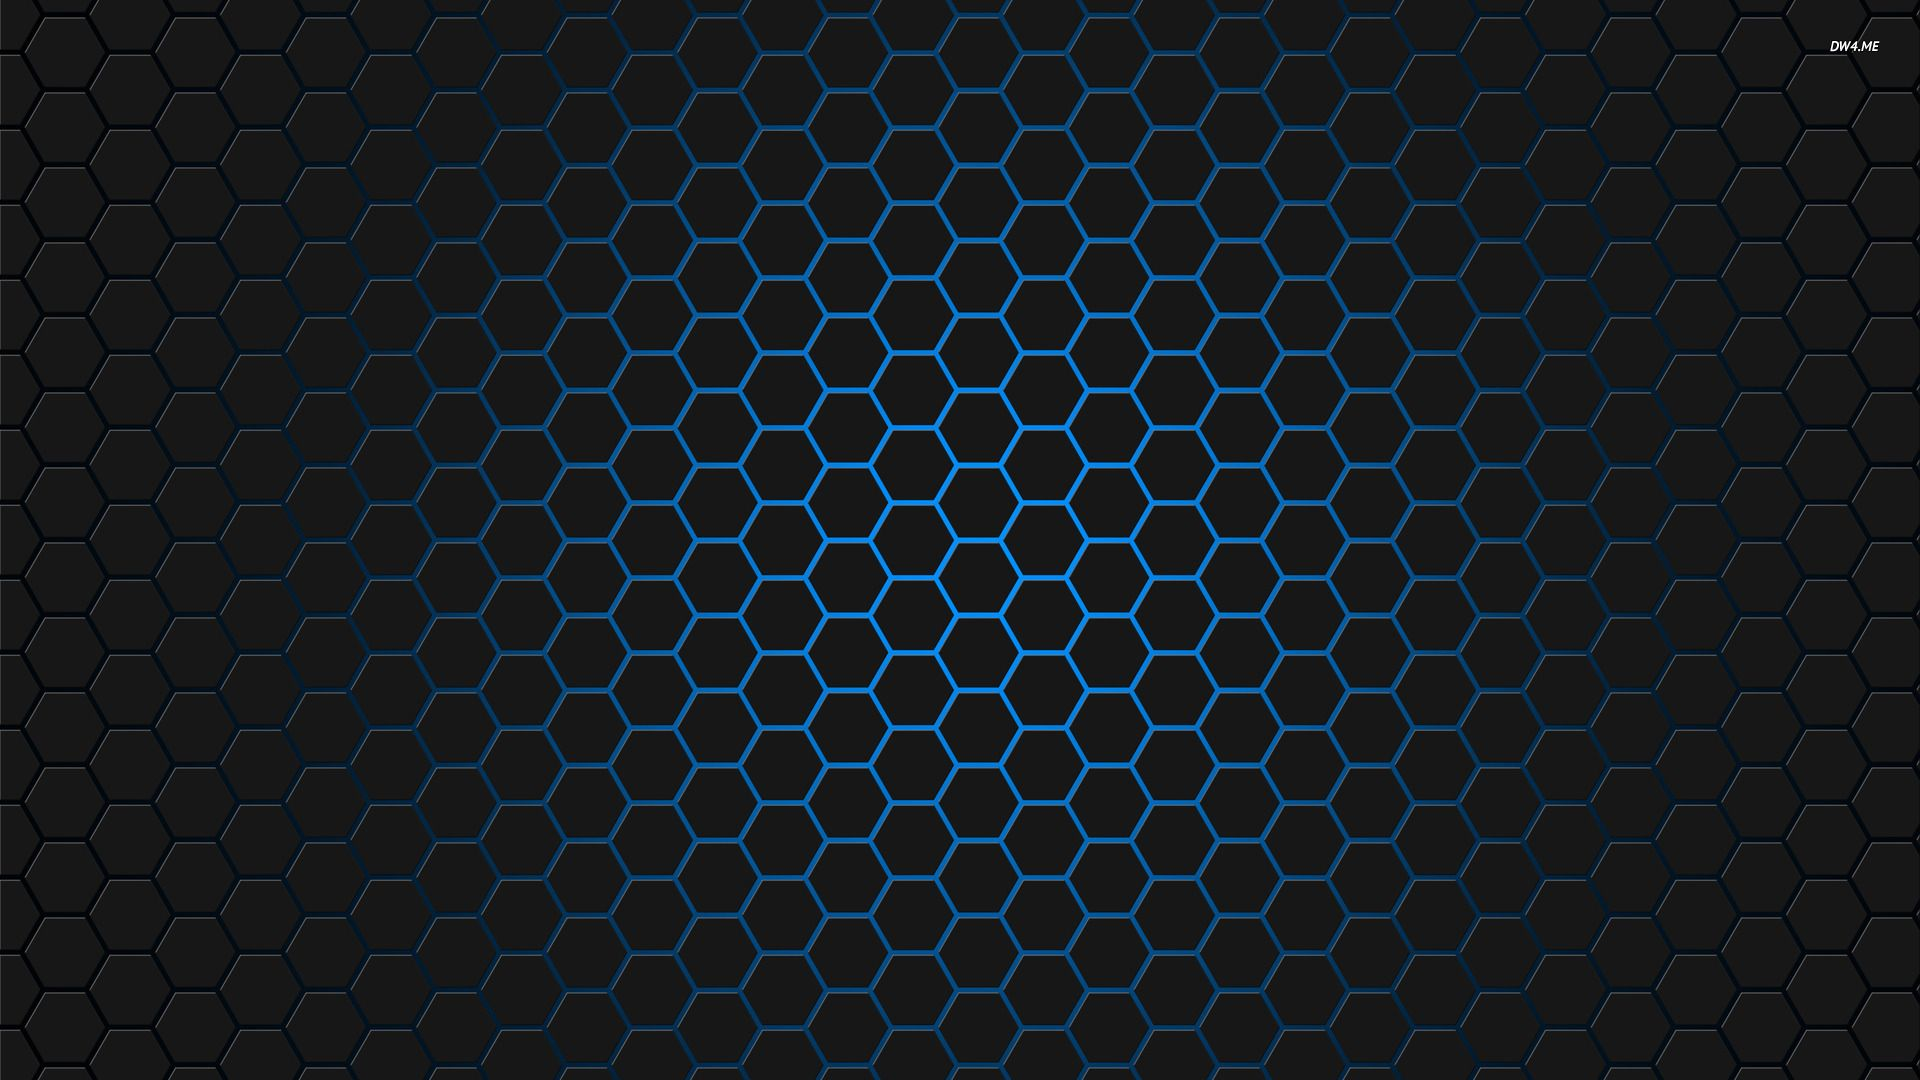 Website Background Texture full hd image